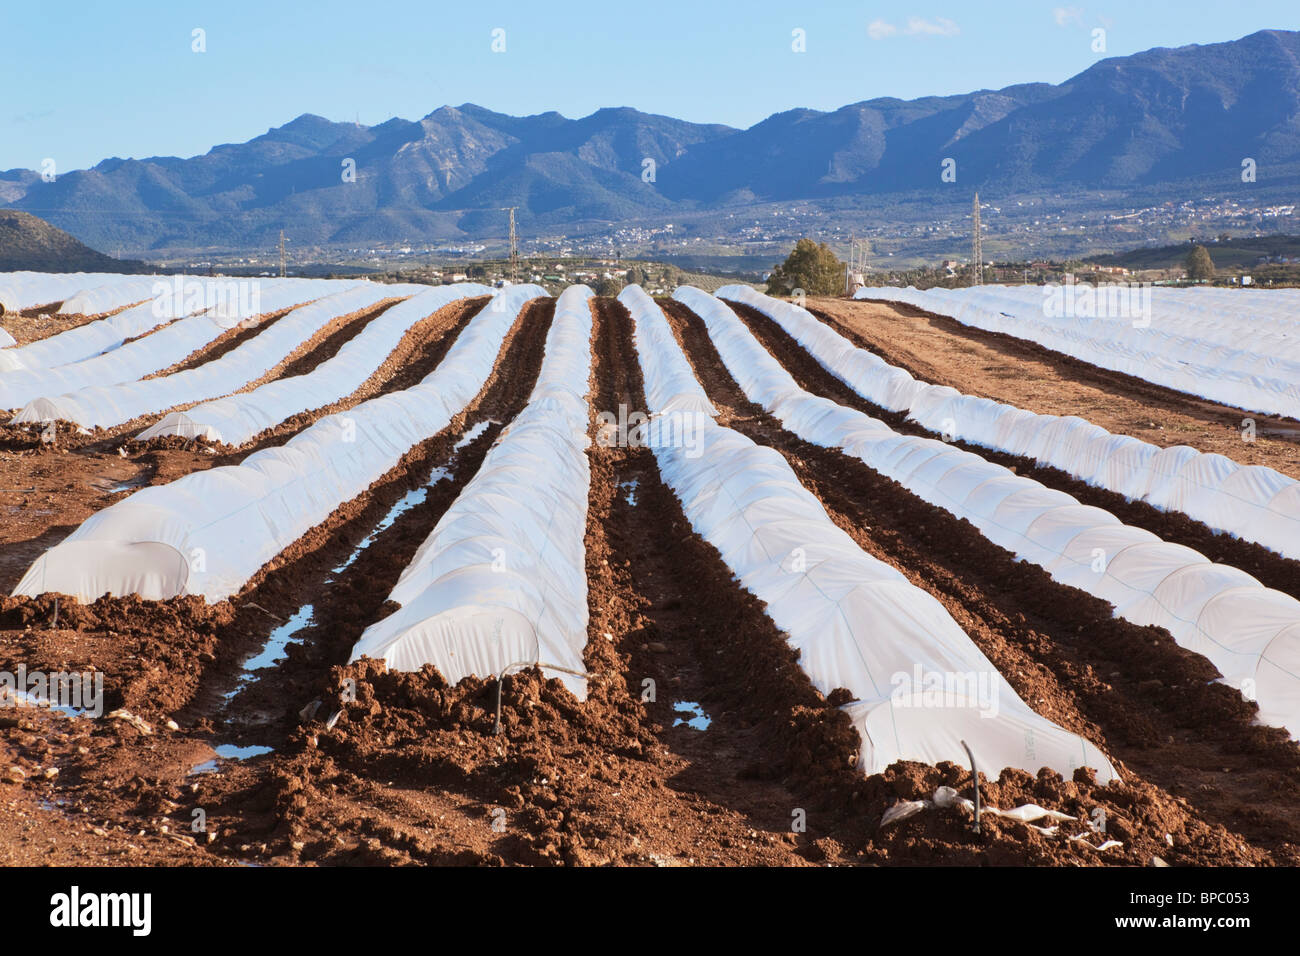 plastic farming crops tunnels stockfotos plastic farming crops tunnels bilder alamy. Black Bedroom Furniture Sets. Home Design Ideas